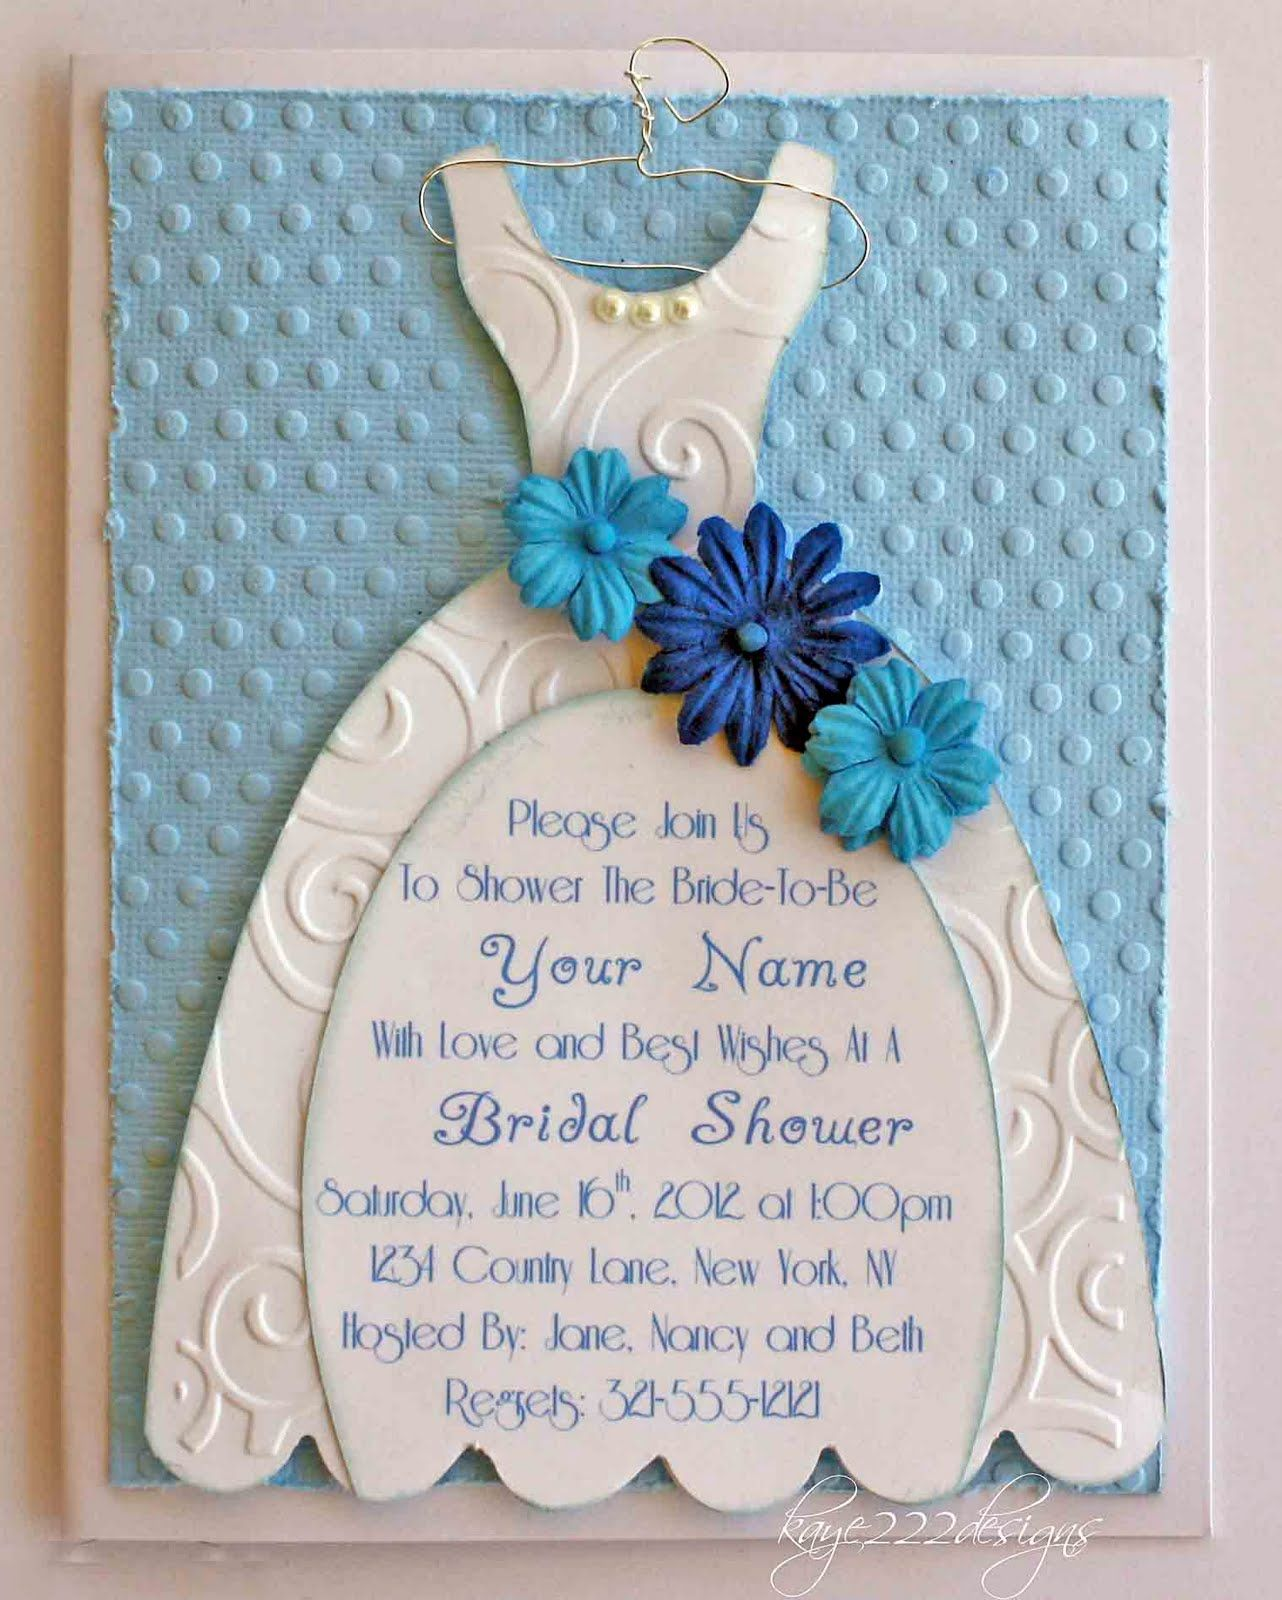 beyond beauty bridal shower card 3